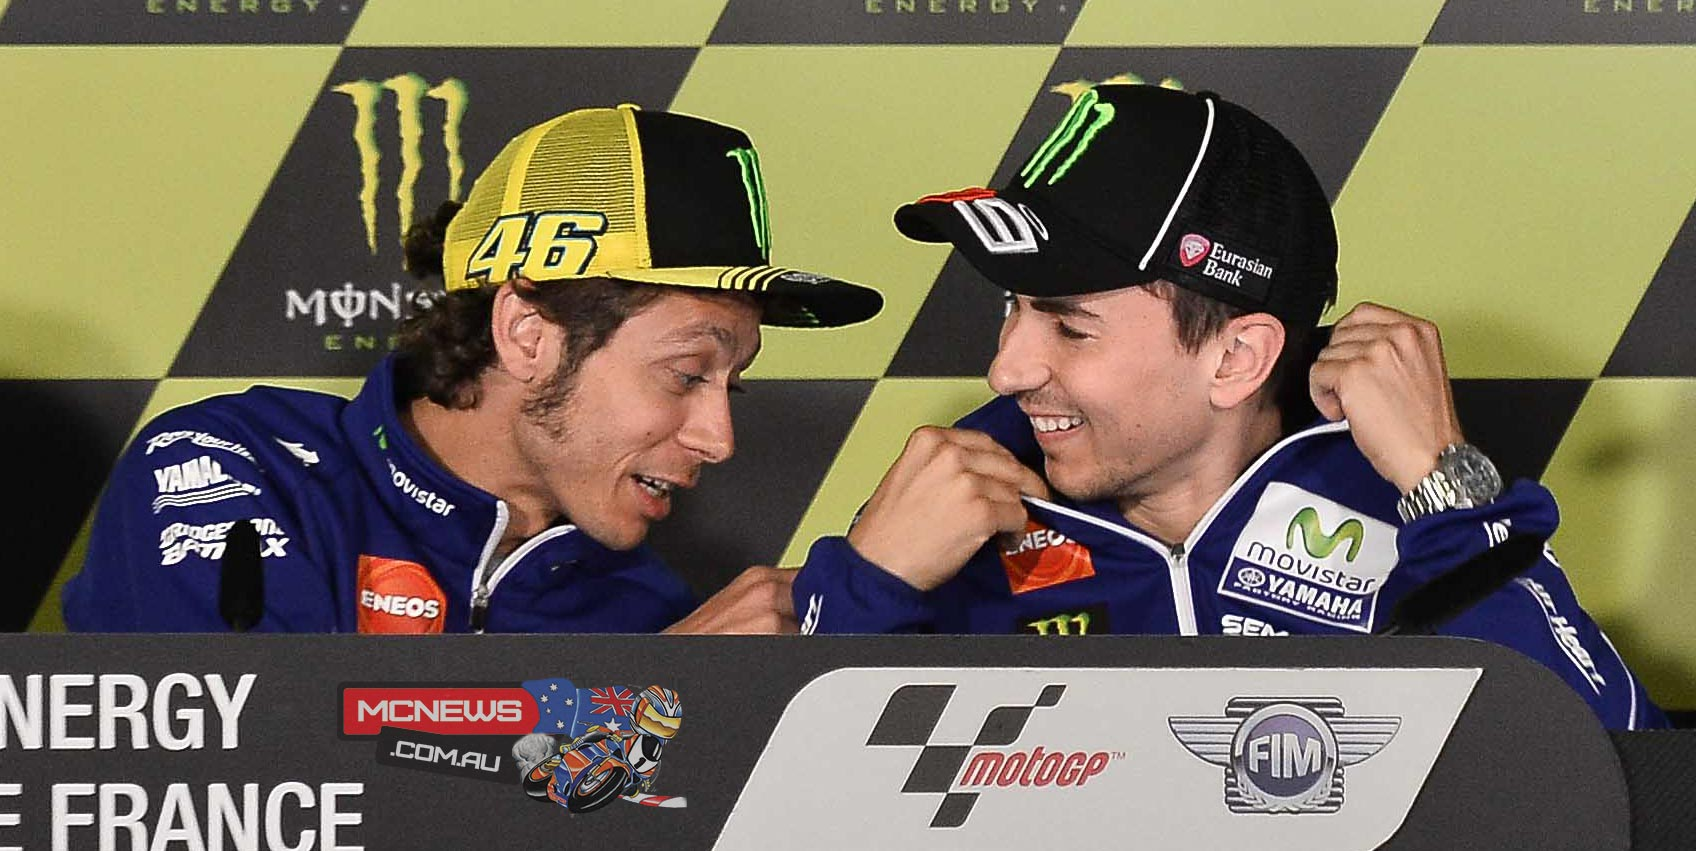 Valentino Rossi and Jorge Lorenzo at Le Mans in 2015